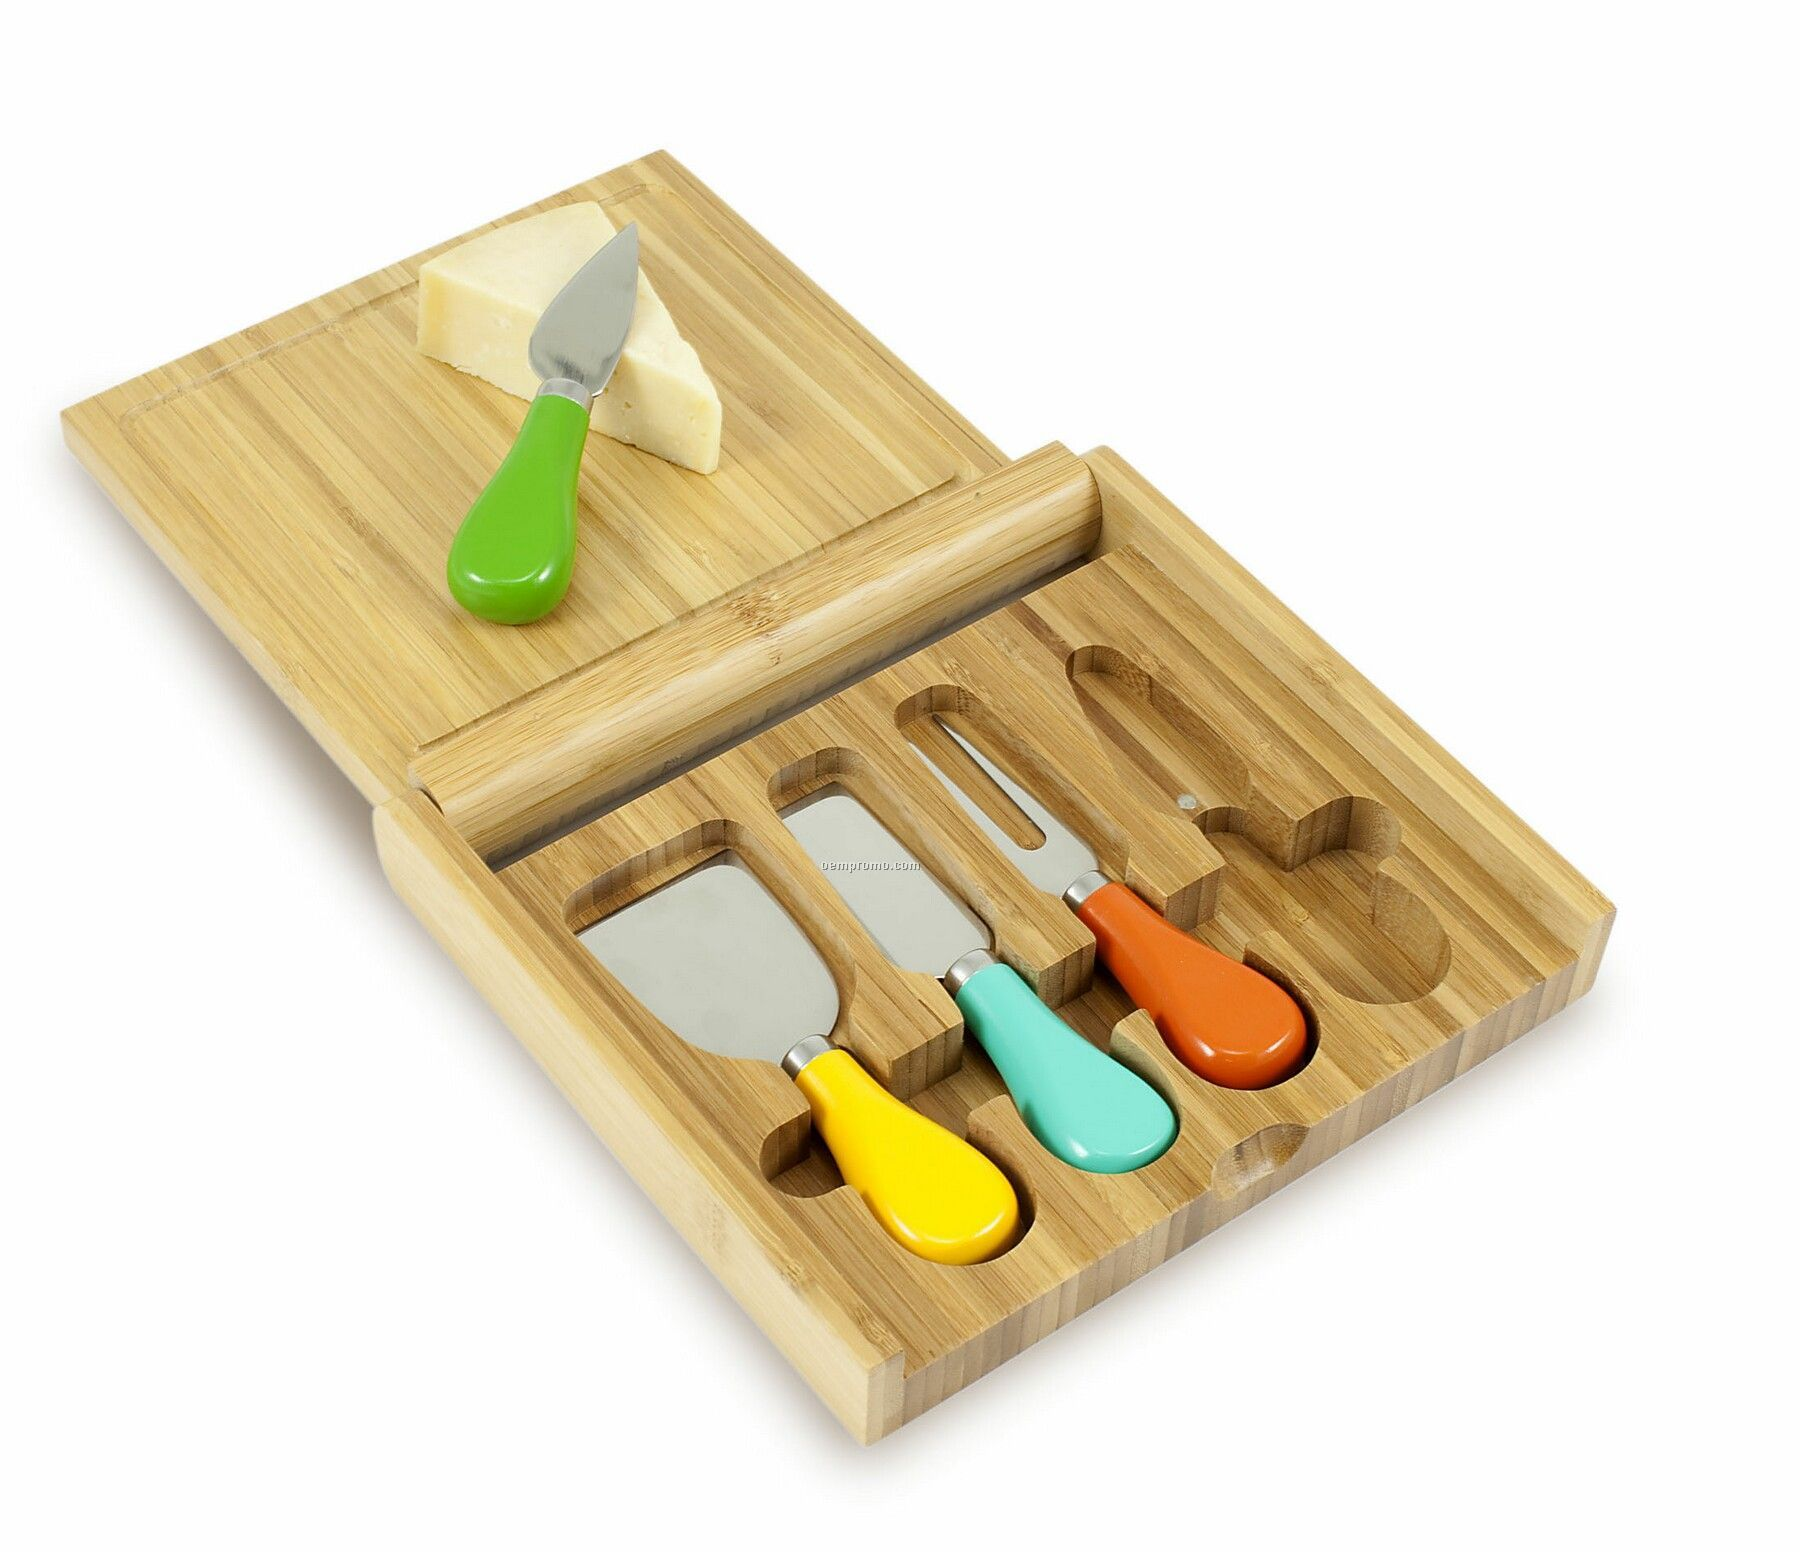 Carnaval Bamboo Cutting Board W/ Colored Handle Cheese Tools